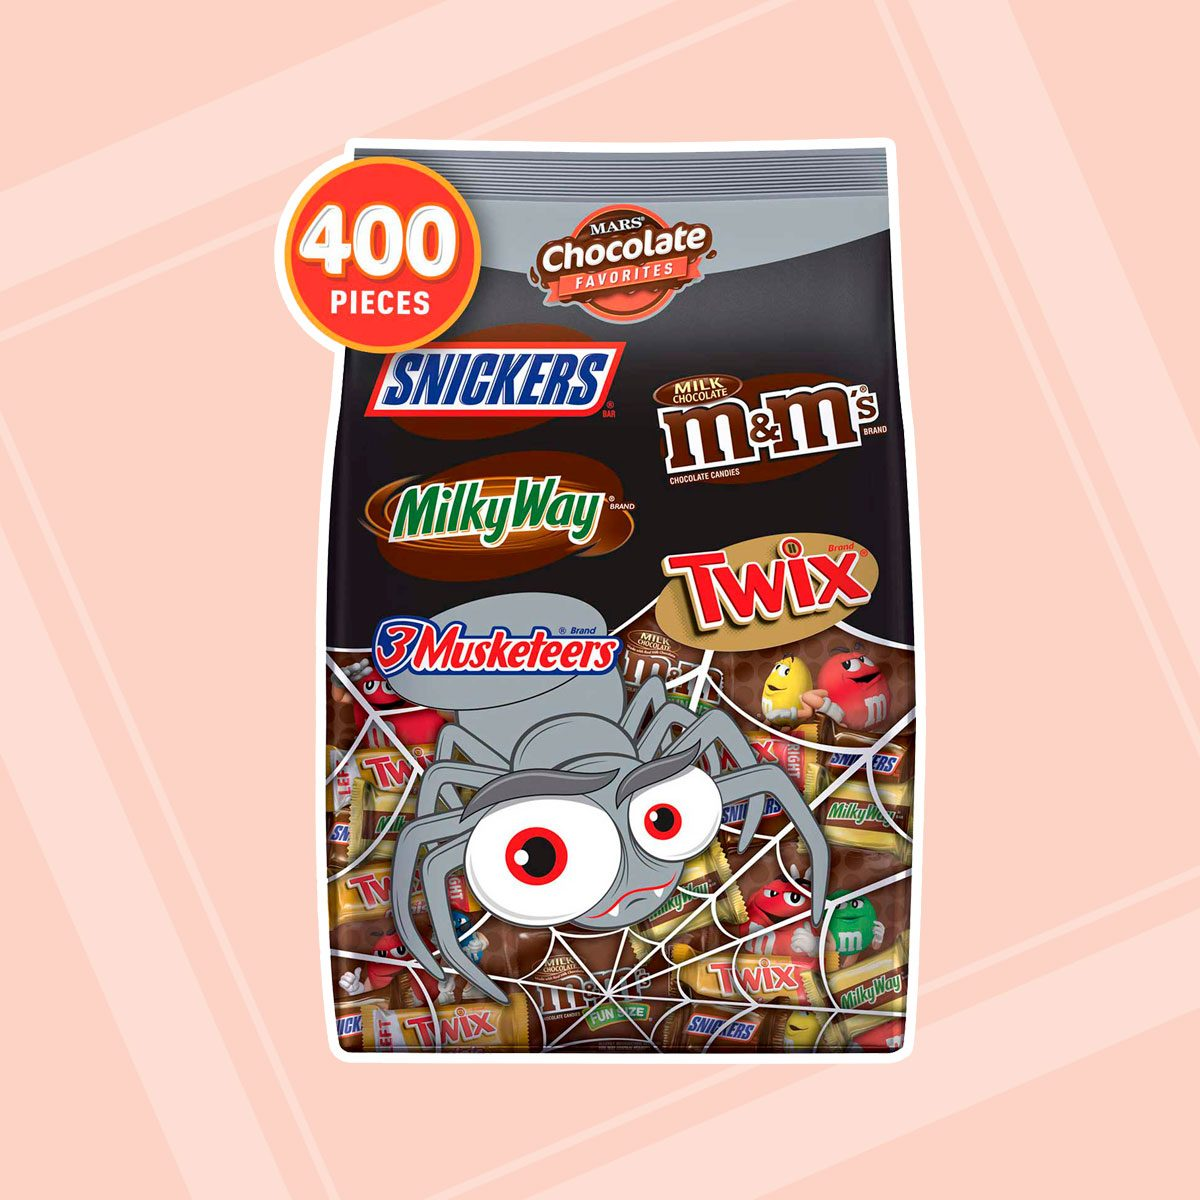 Mars Chocolate Favorites Halloween Candy Bars variety mix bag